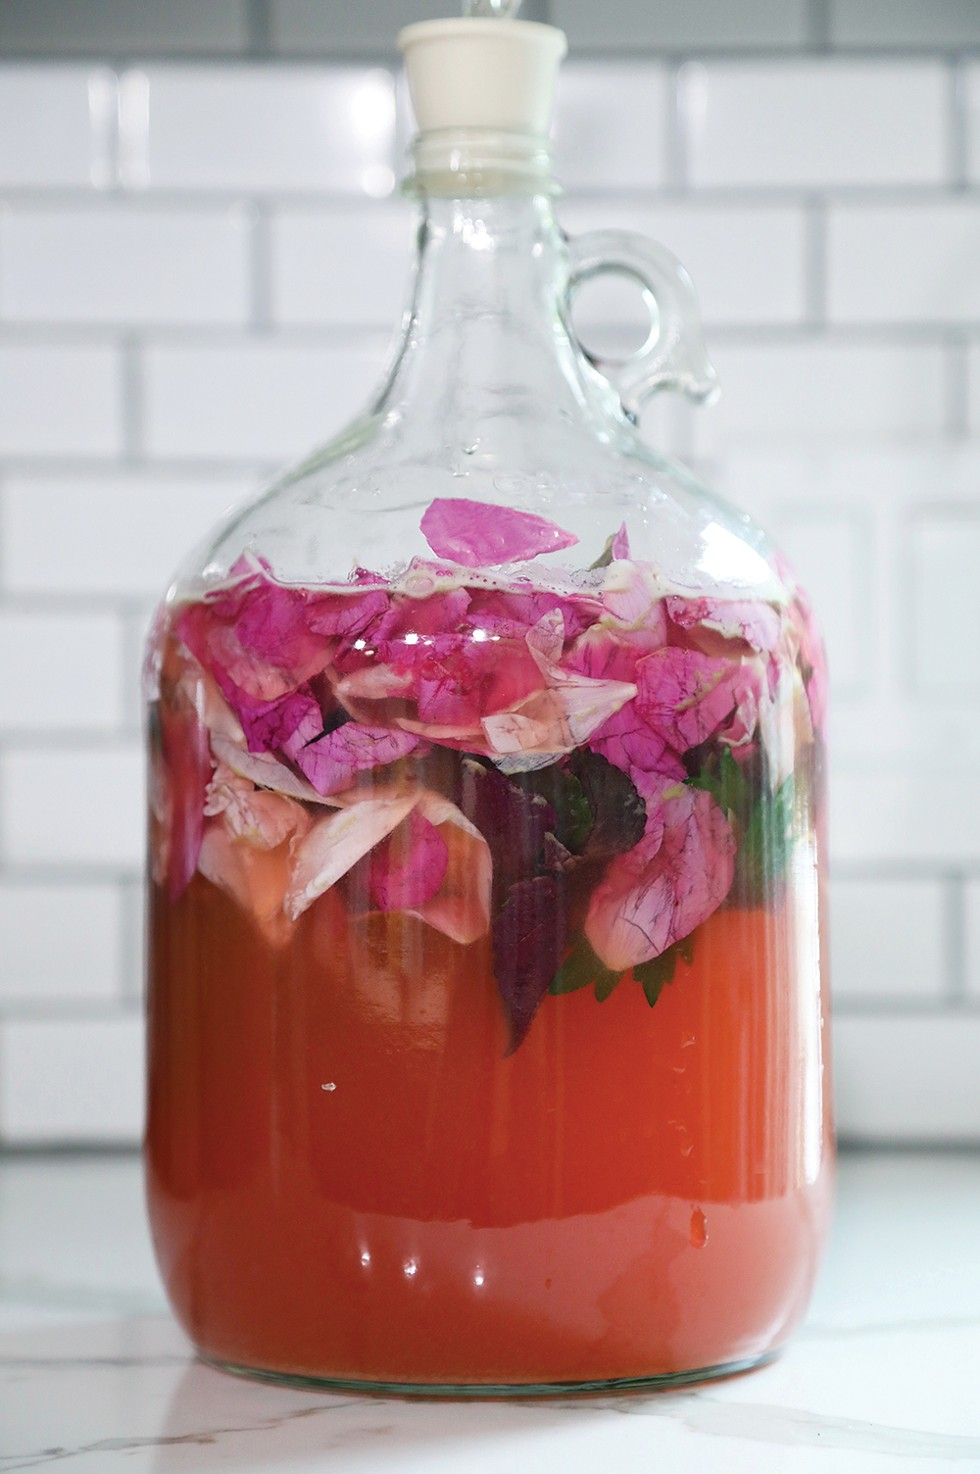 Rose petals, shiso, mugwort, and anise hyssop ferment with an airlock. - PHOTO: PETER BARRETT